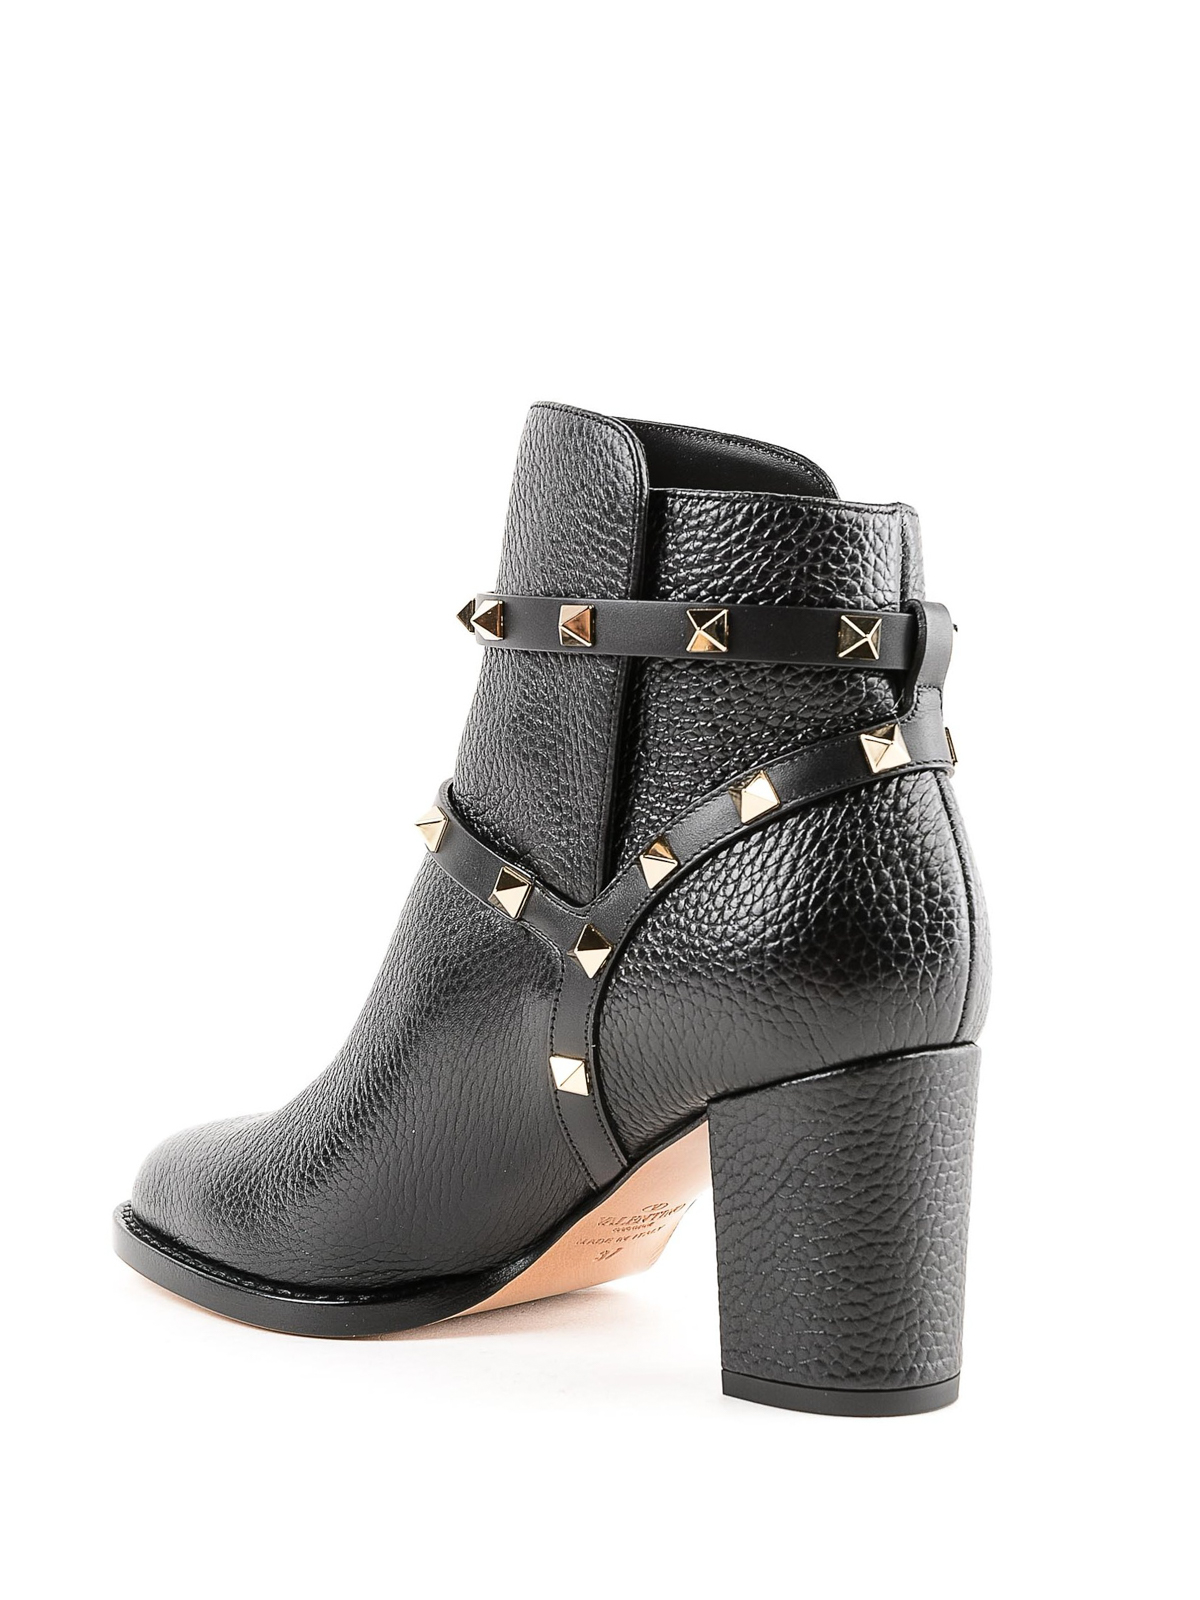 2ad6bca5d7c9 Valentino Garavani - Rockstud leather ankle boots - ankle boots ...